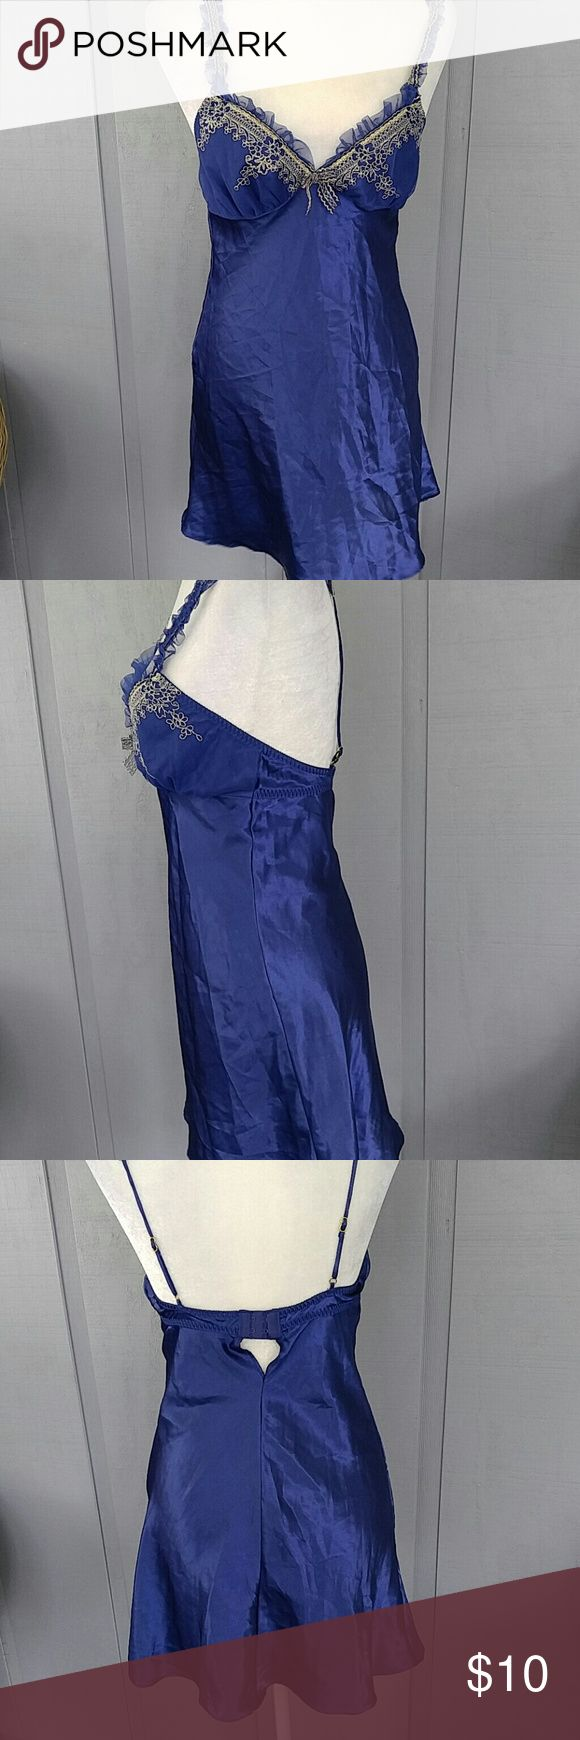 Cinema Etoile royal blue lingerie S Gorgeous shimmering fabric in royal blue with gold lace trim Cinema Etoile Intimates & Sleepwear Chemises & Slips